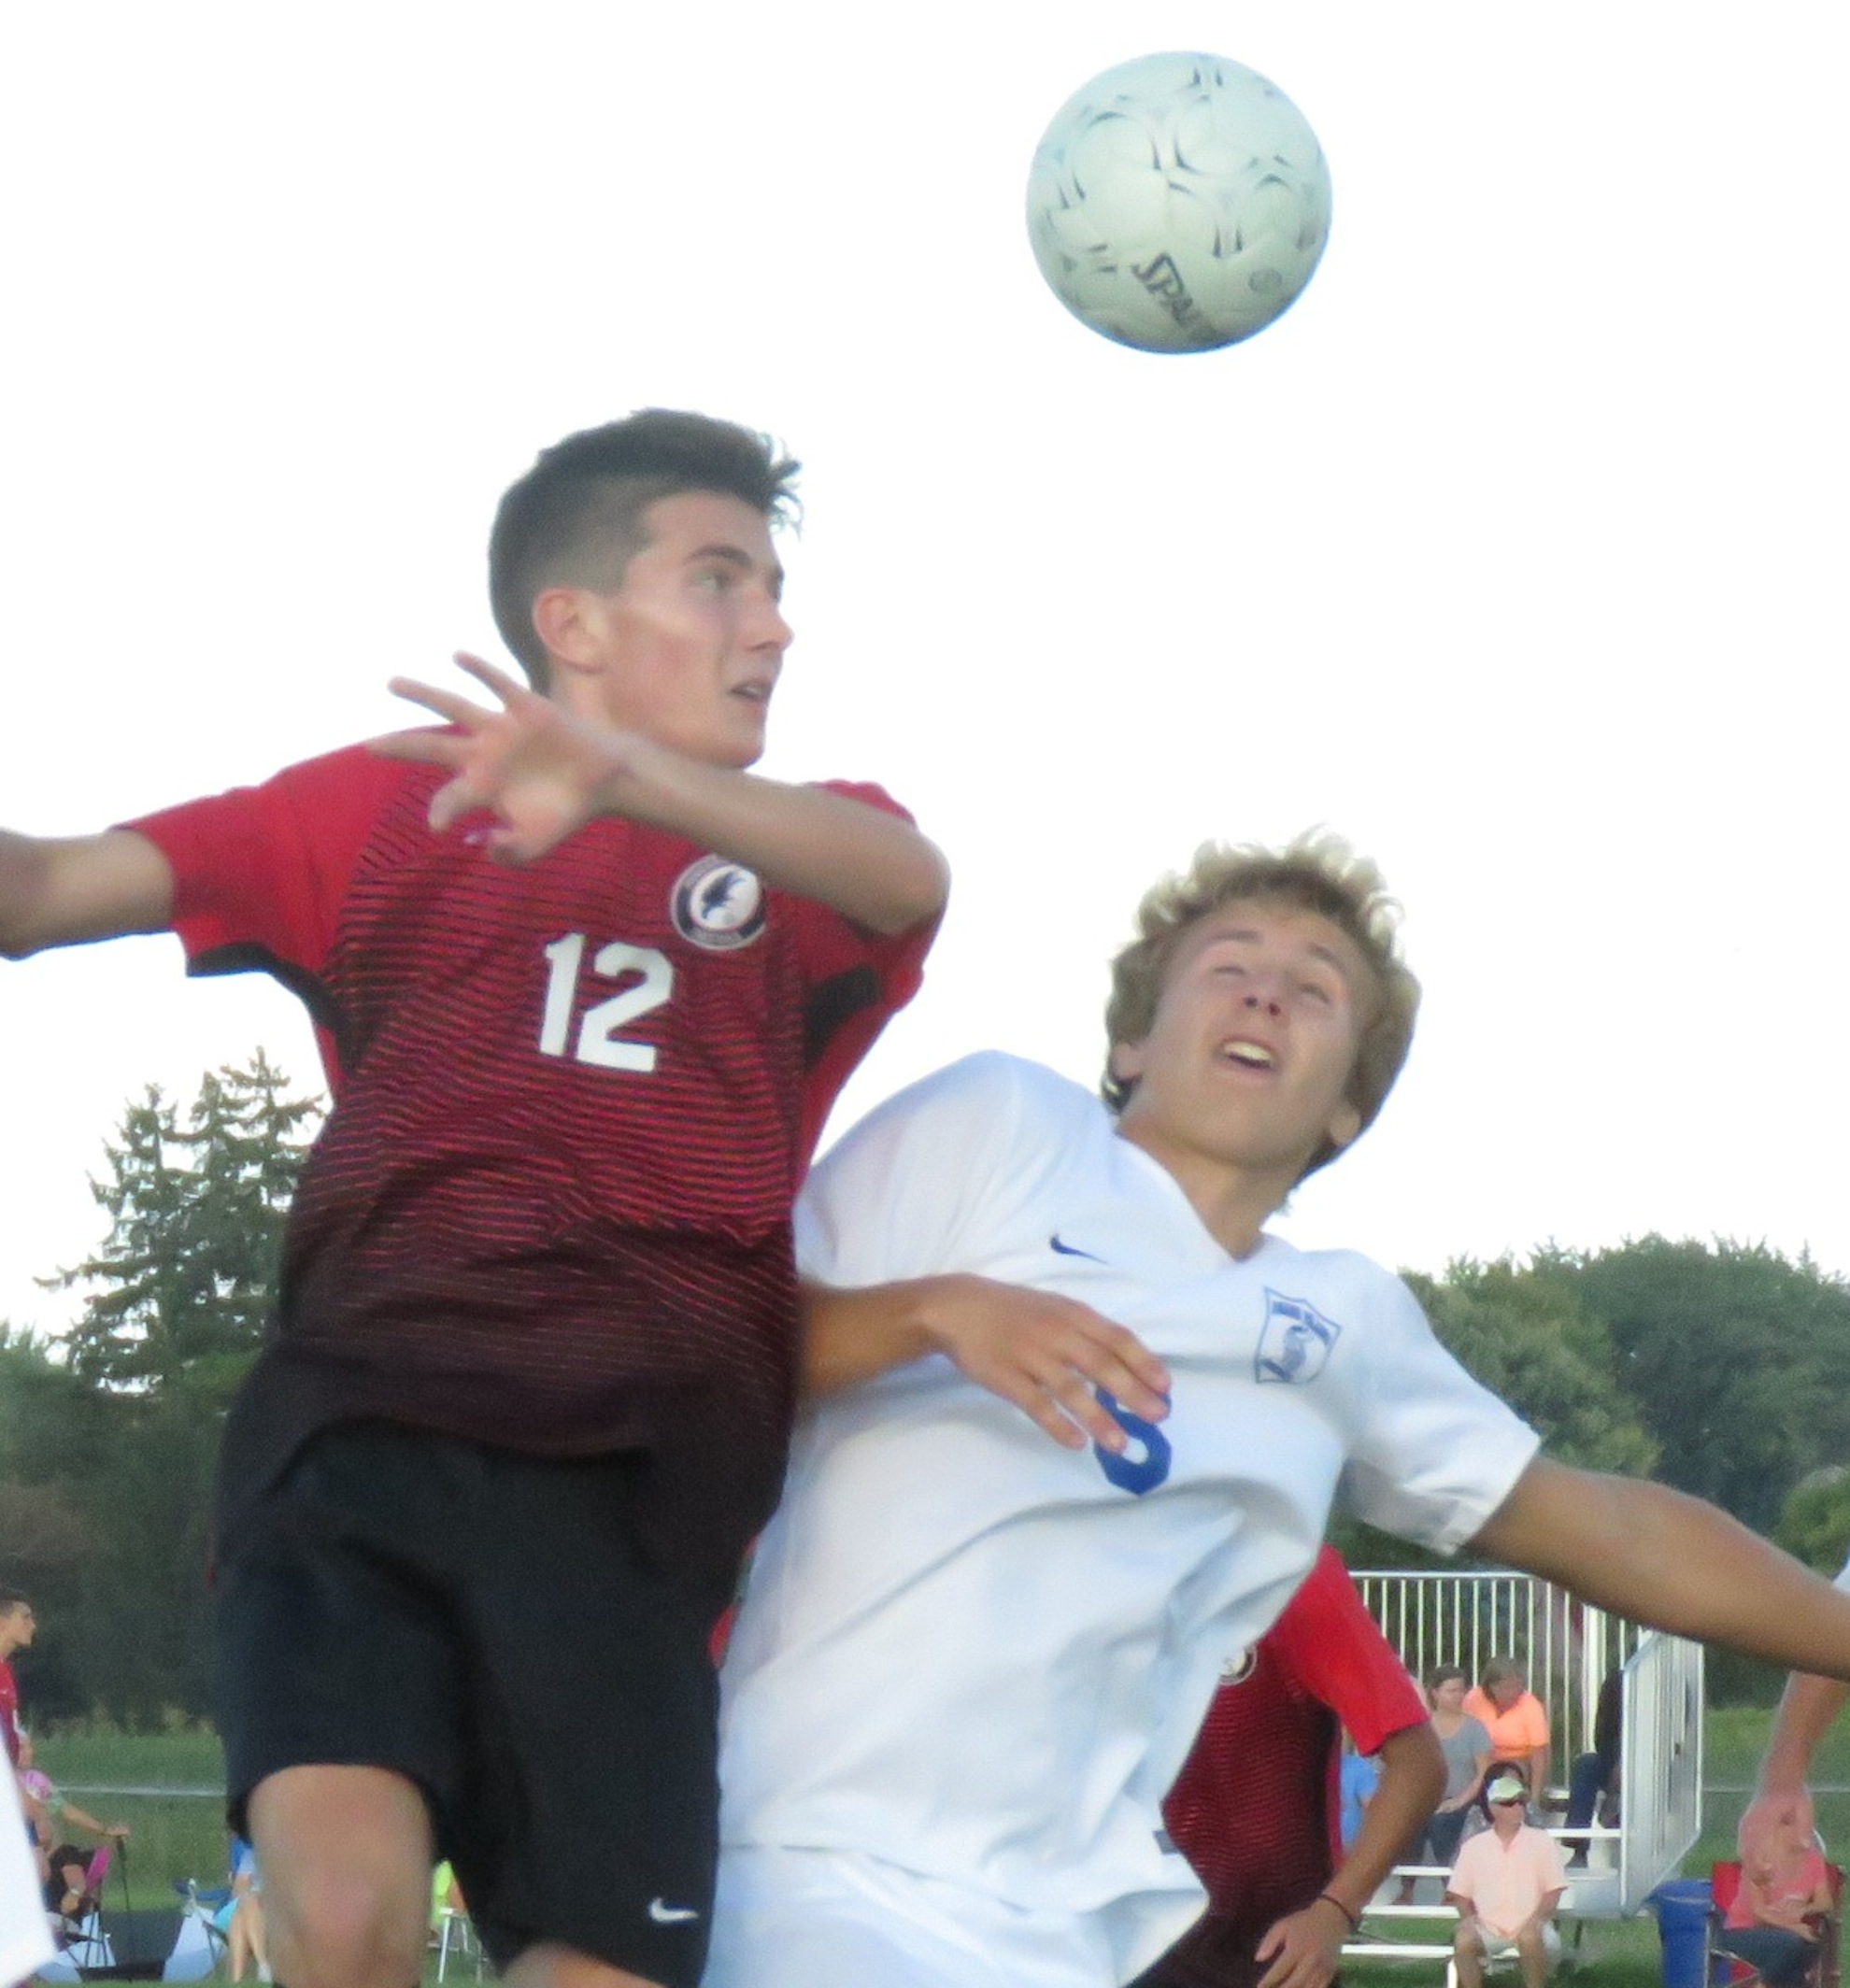 Niagara-Wheatfield's Jacob Vallas, left, looks to head the ball as he's defended by Grand Island's Ken Carter. (Photos by David Yarger)